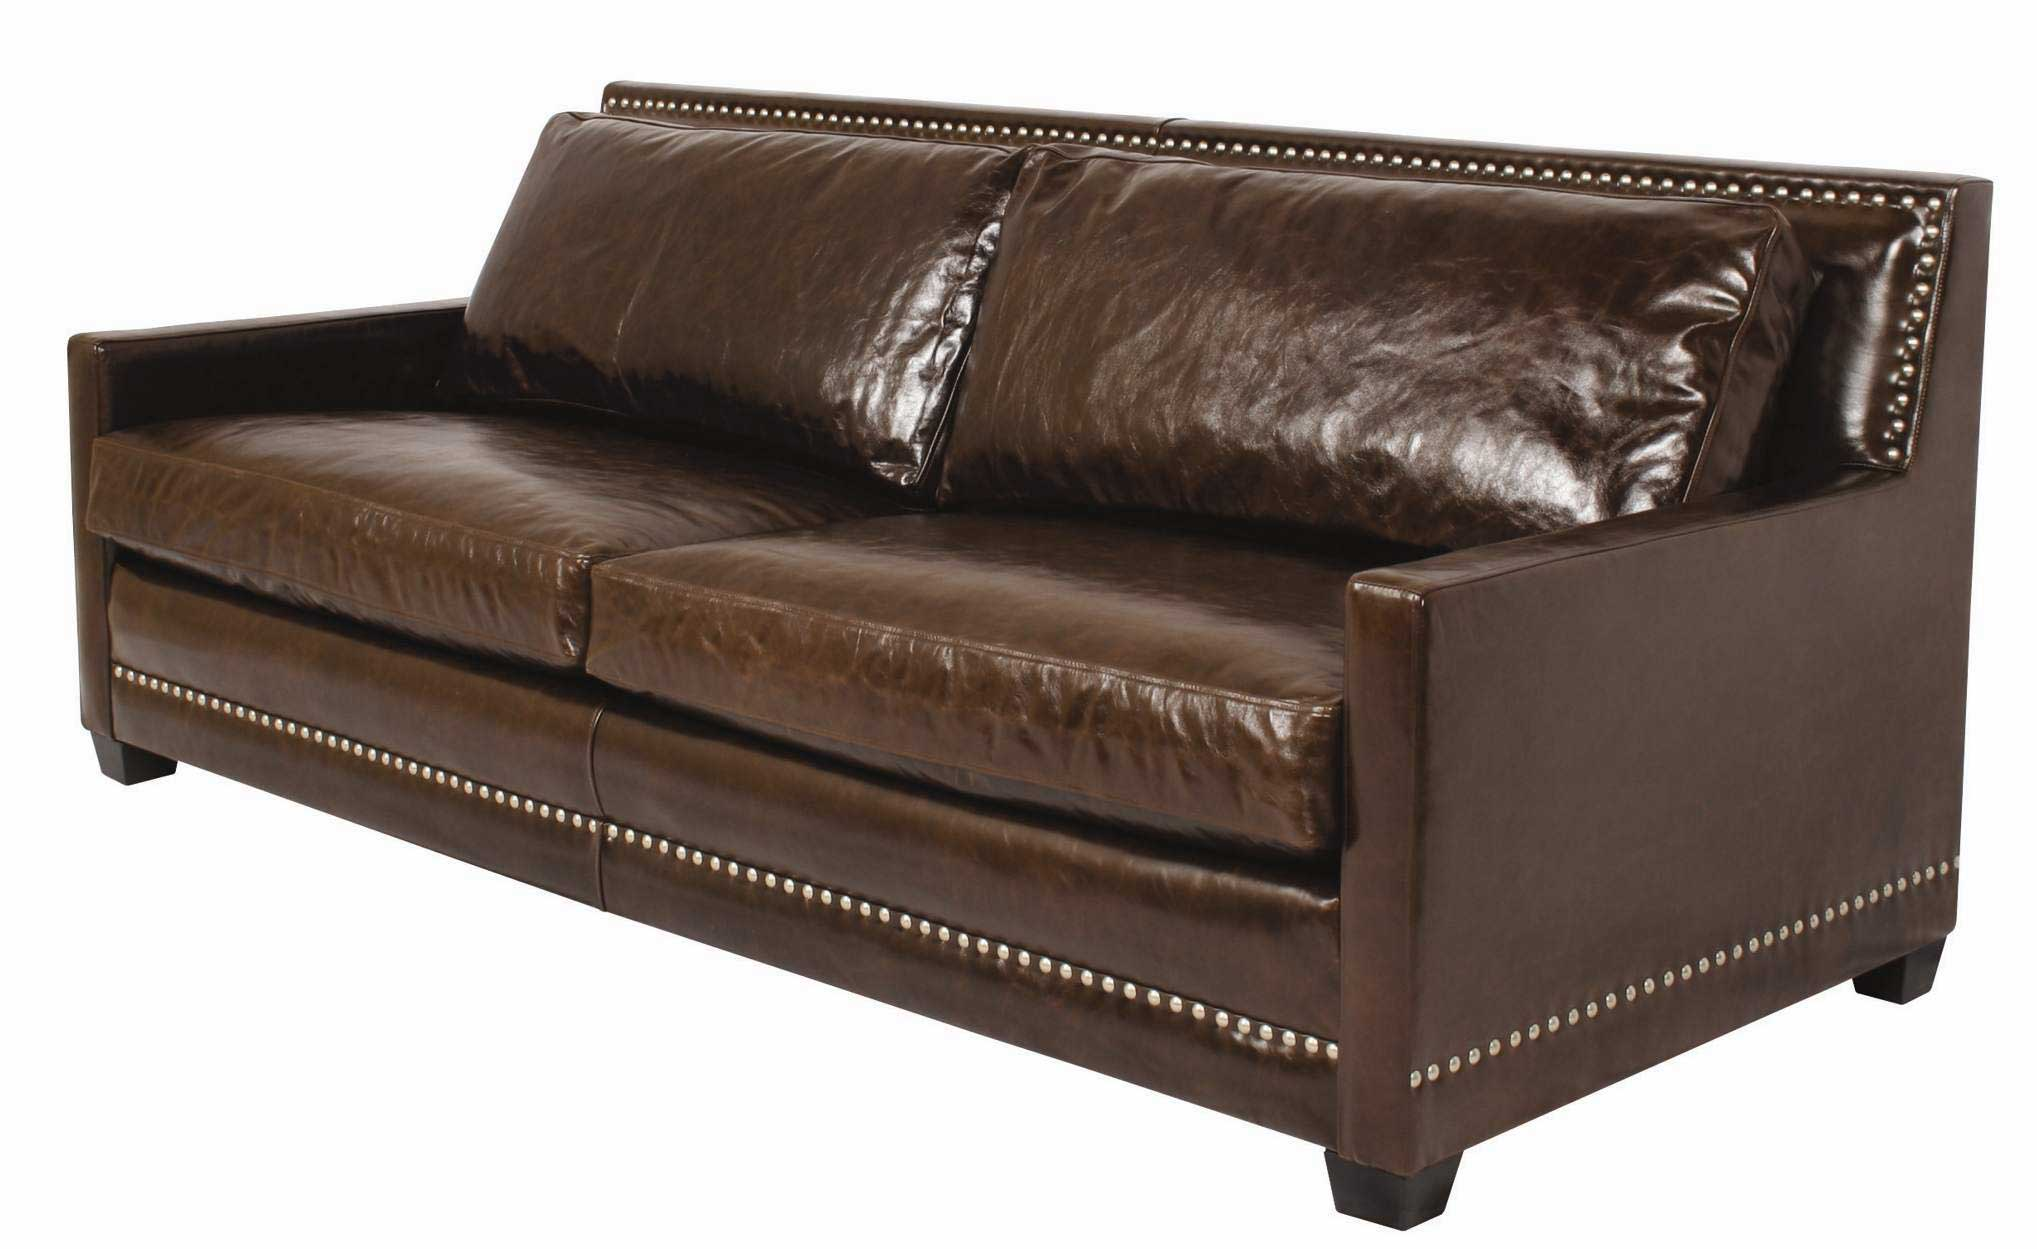 Poppy Leather Furniture